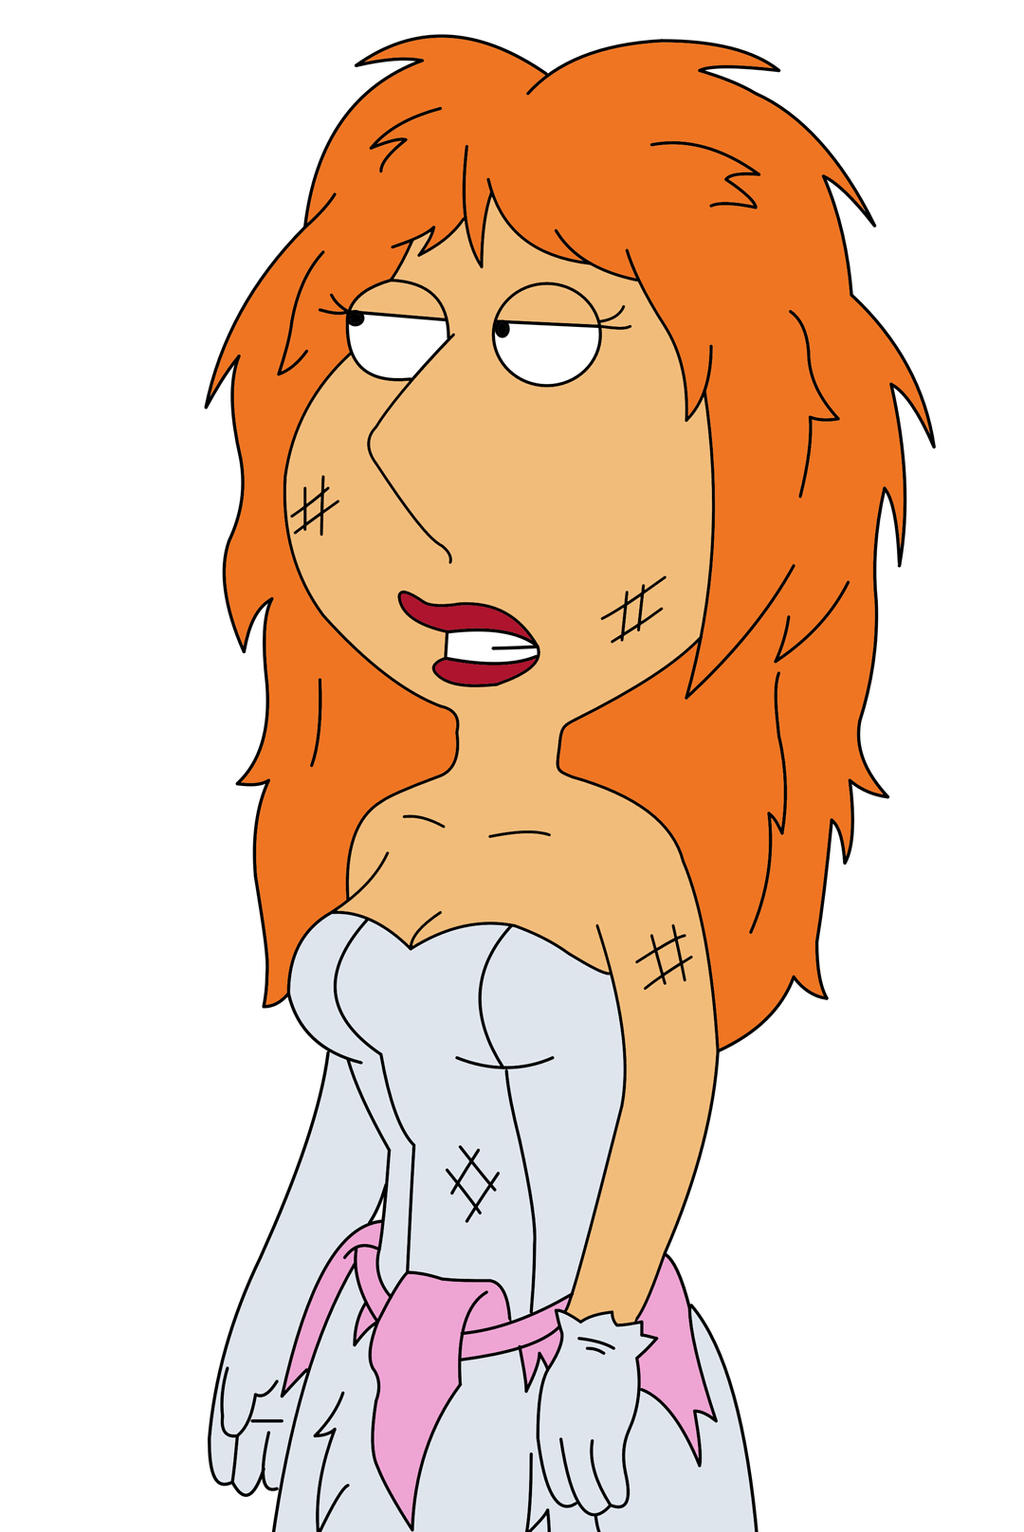 Louis griffen from family guy porn